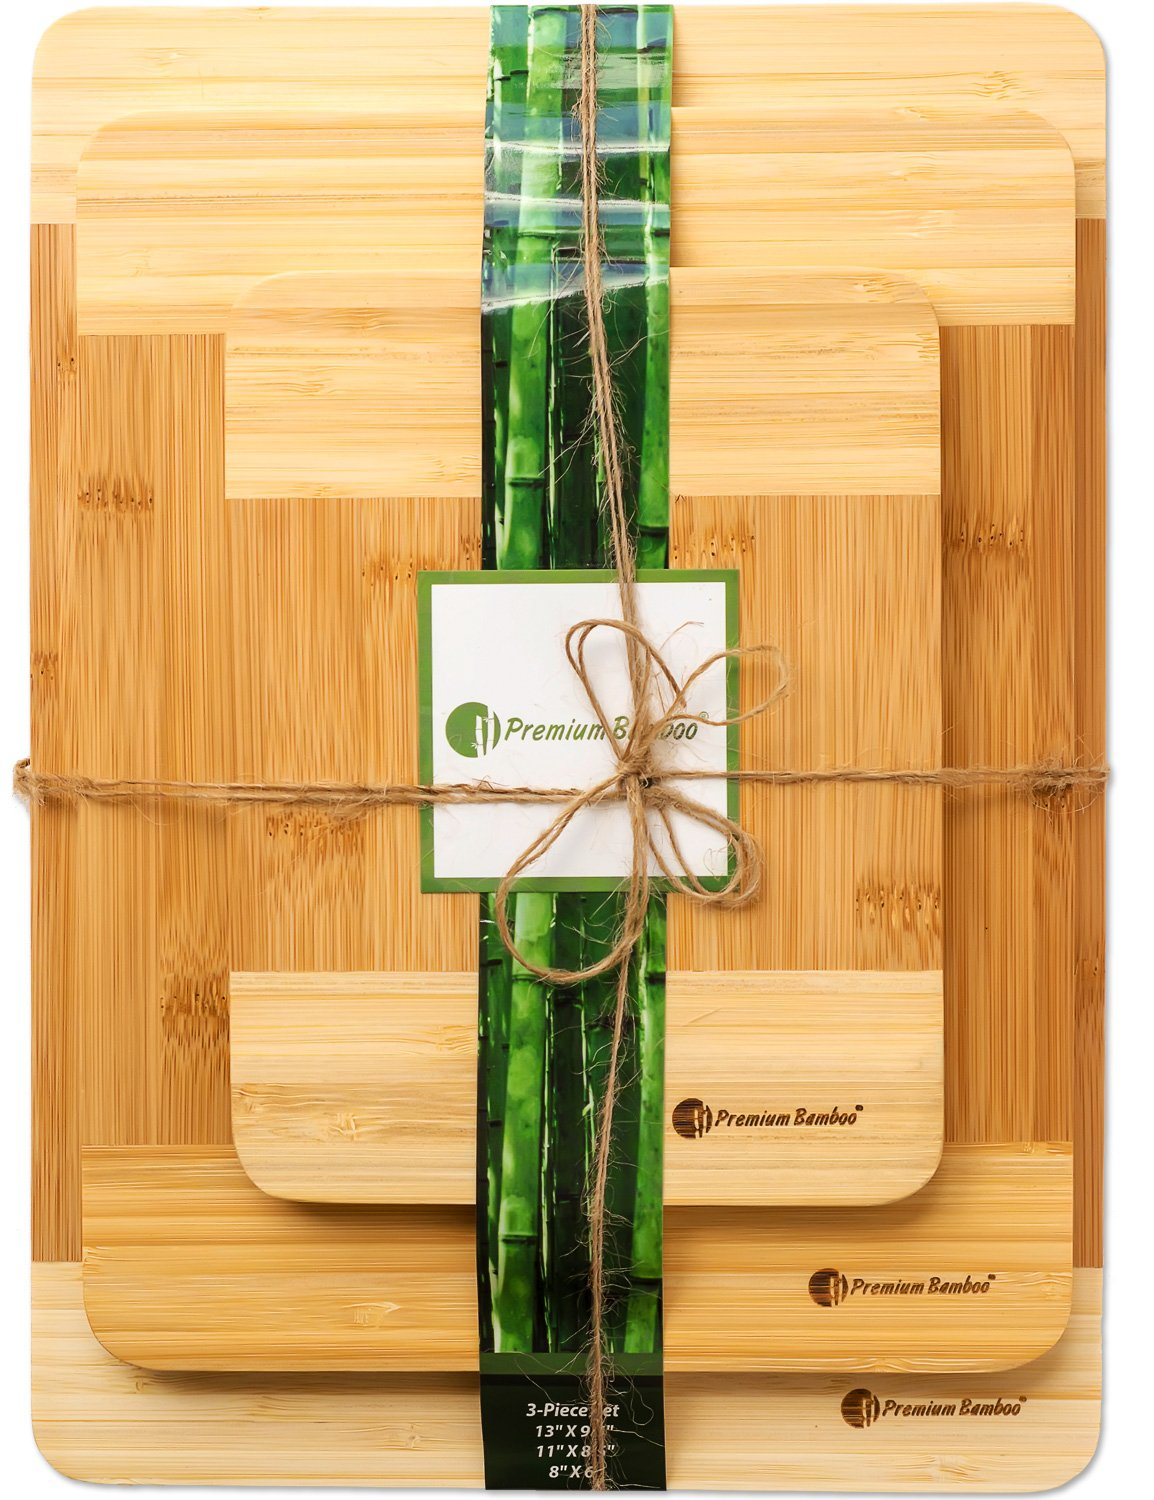 Premium Bamboo Cutting Board Via Amazon